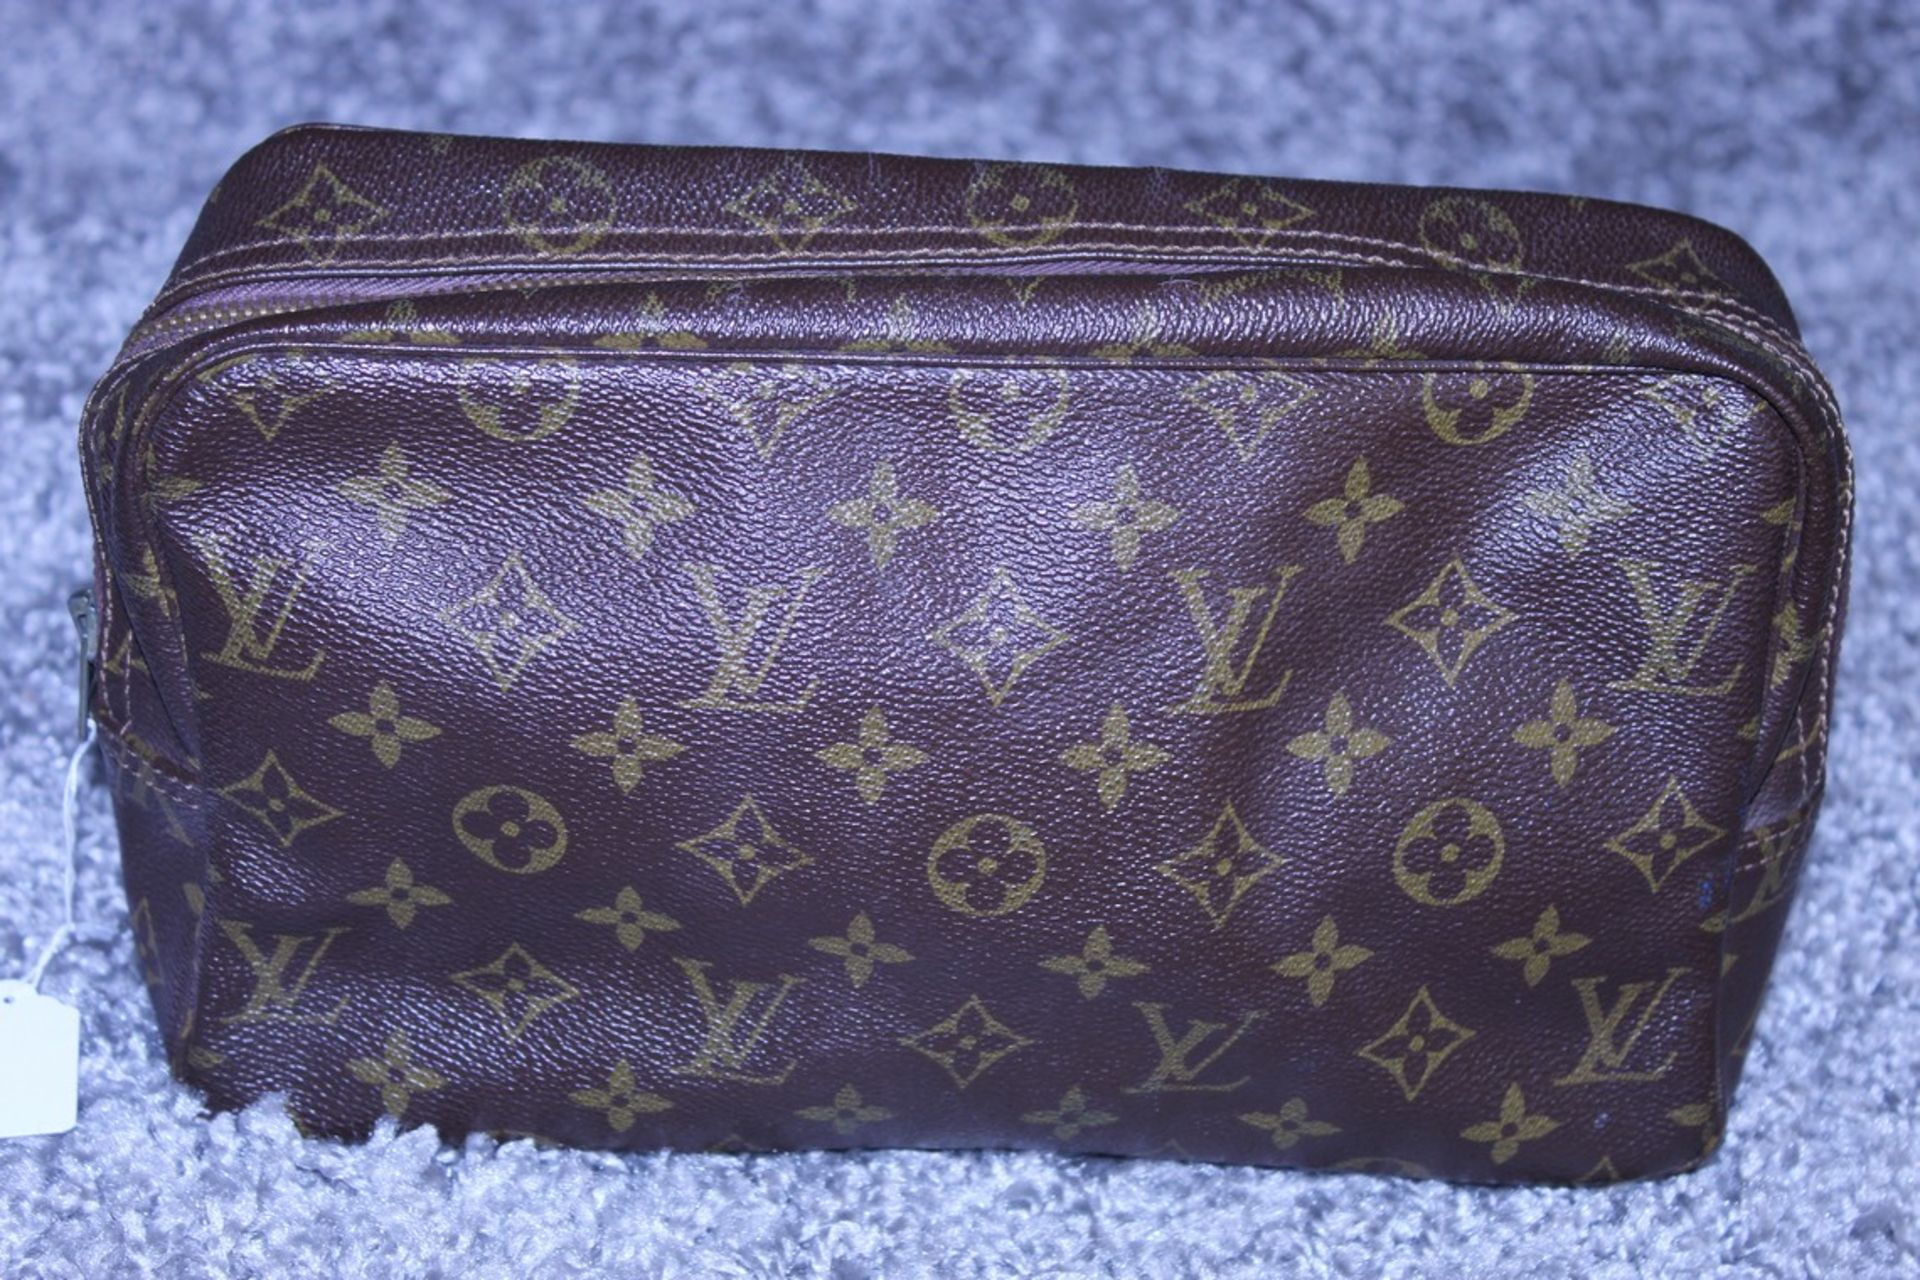 RRP £520 Louis Vuitton Toiletry Pouch, Brown Coated Canvas (Production Code 821) Condition Rating - Image 2 of 4